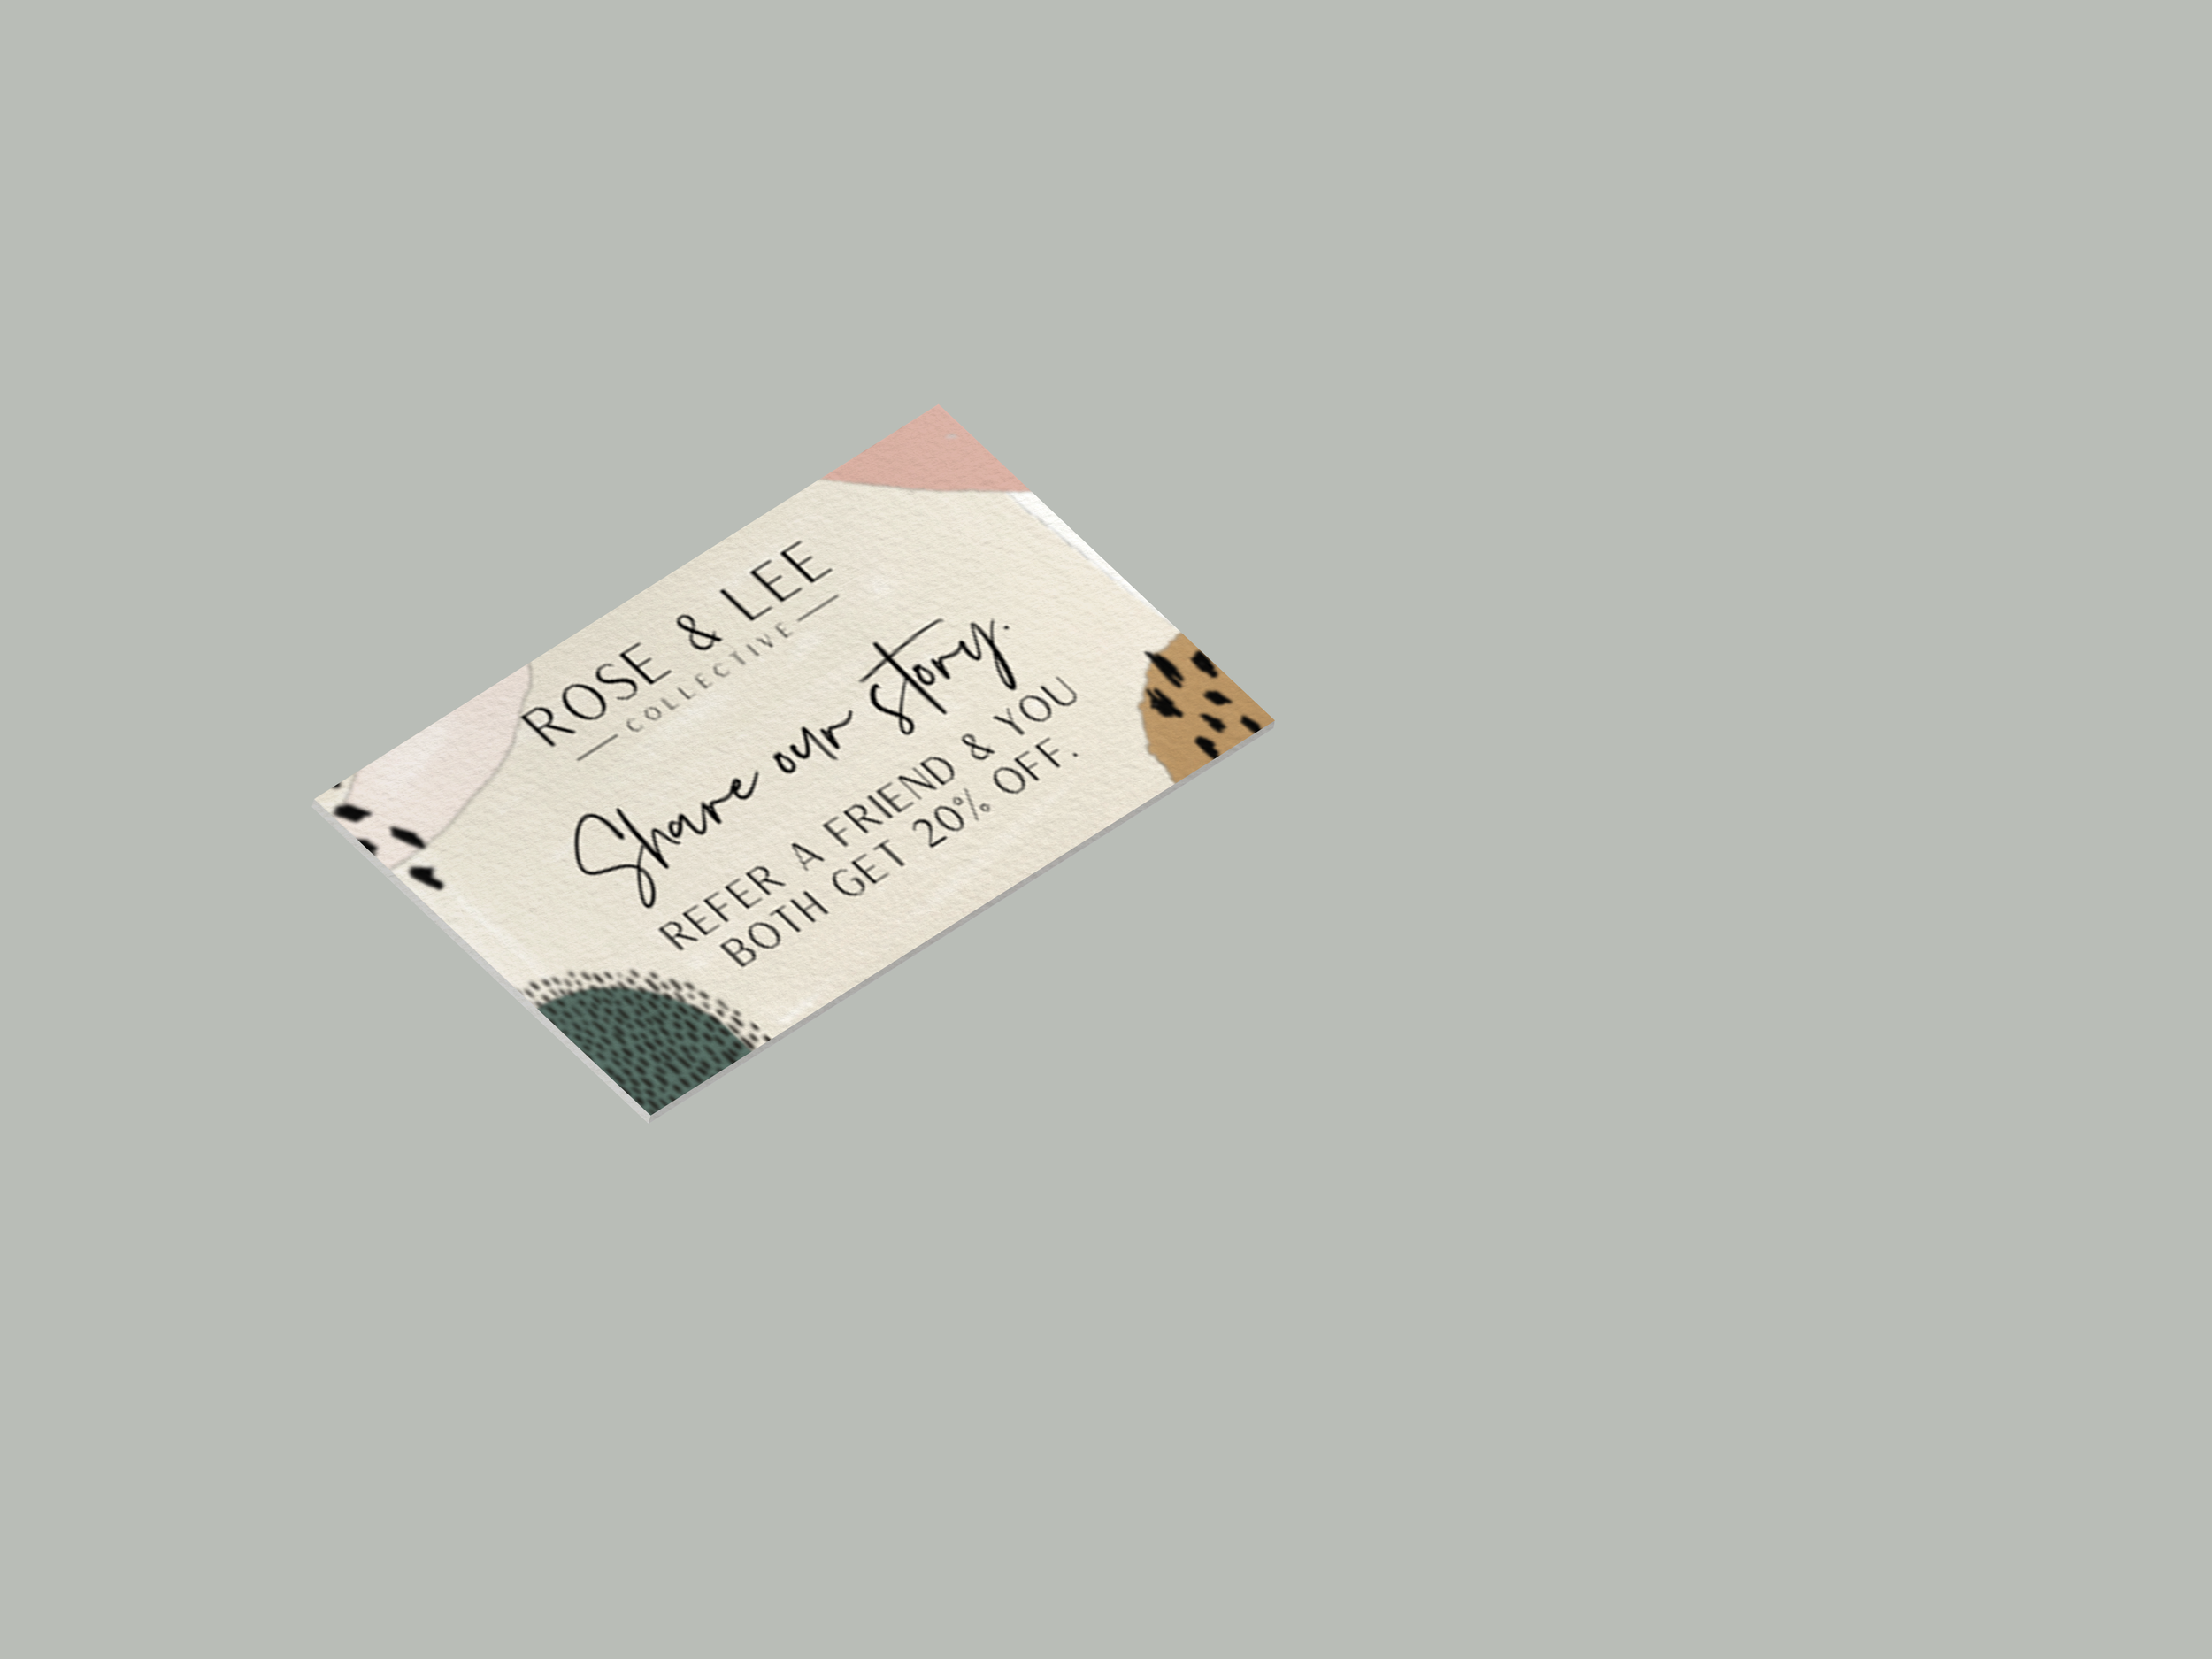 Business-cards-on-palm-leaves-mockup-by-TUHOMUHO.png